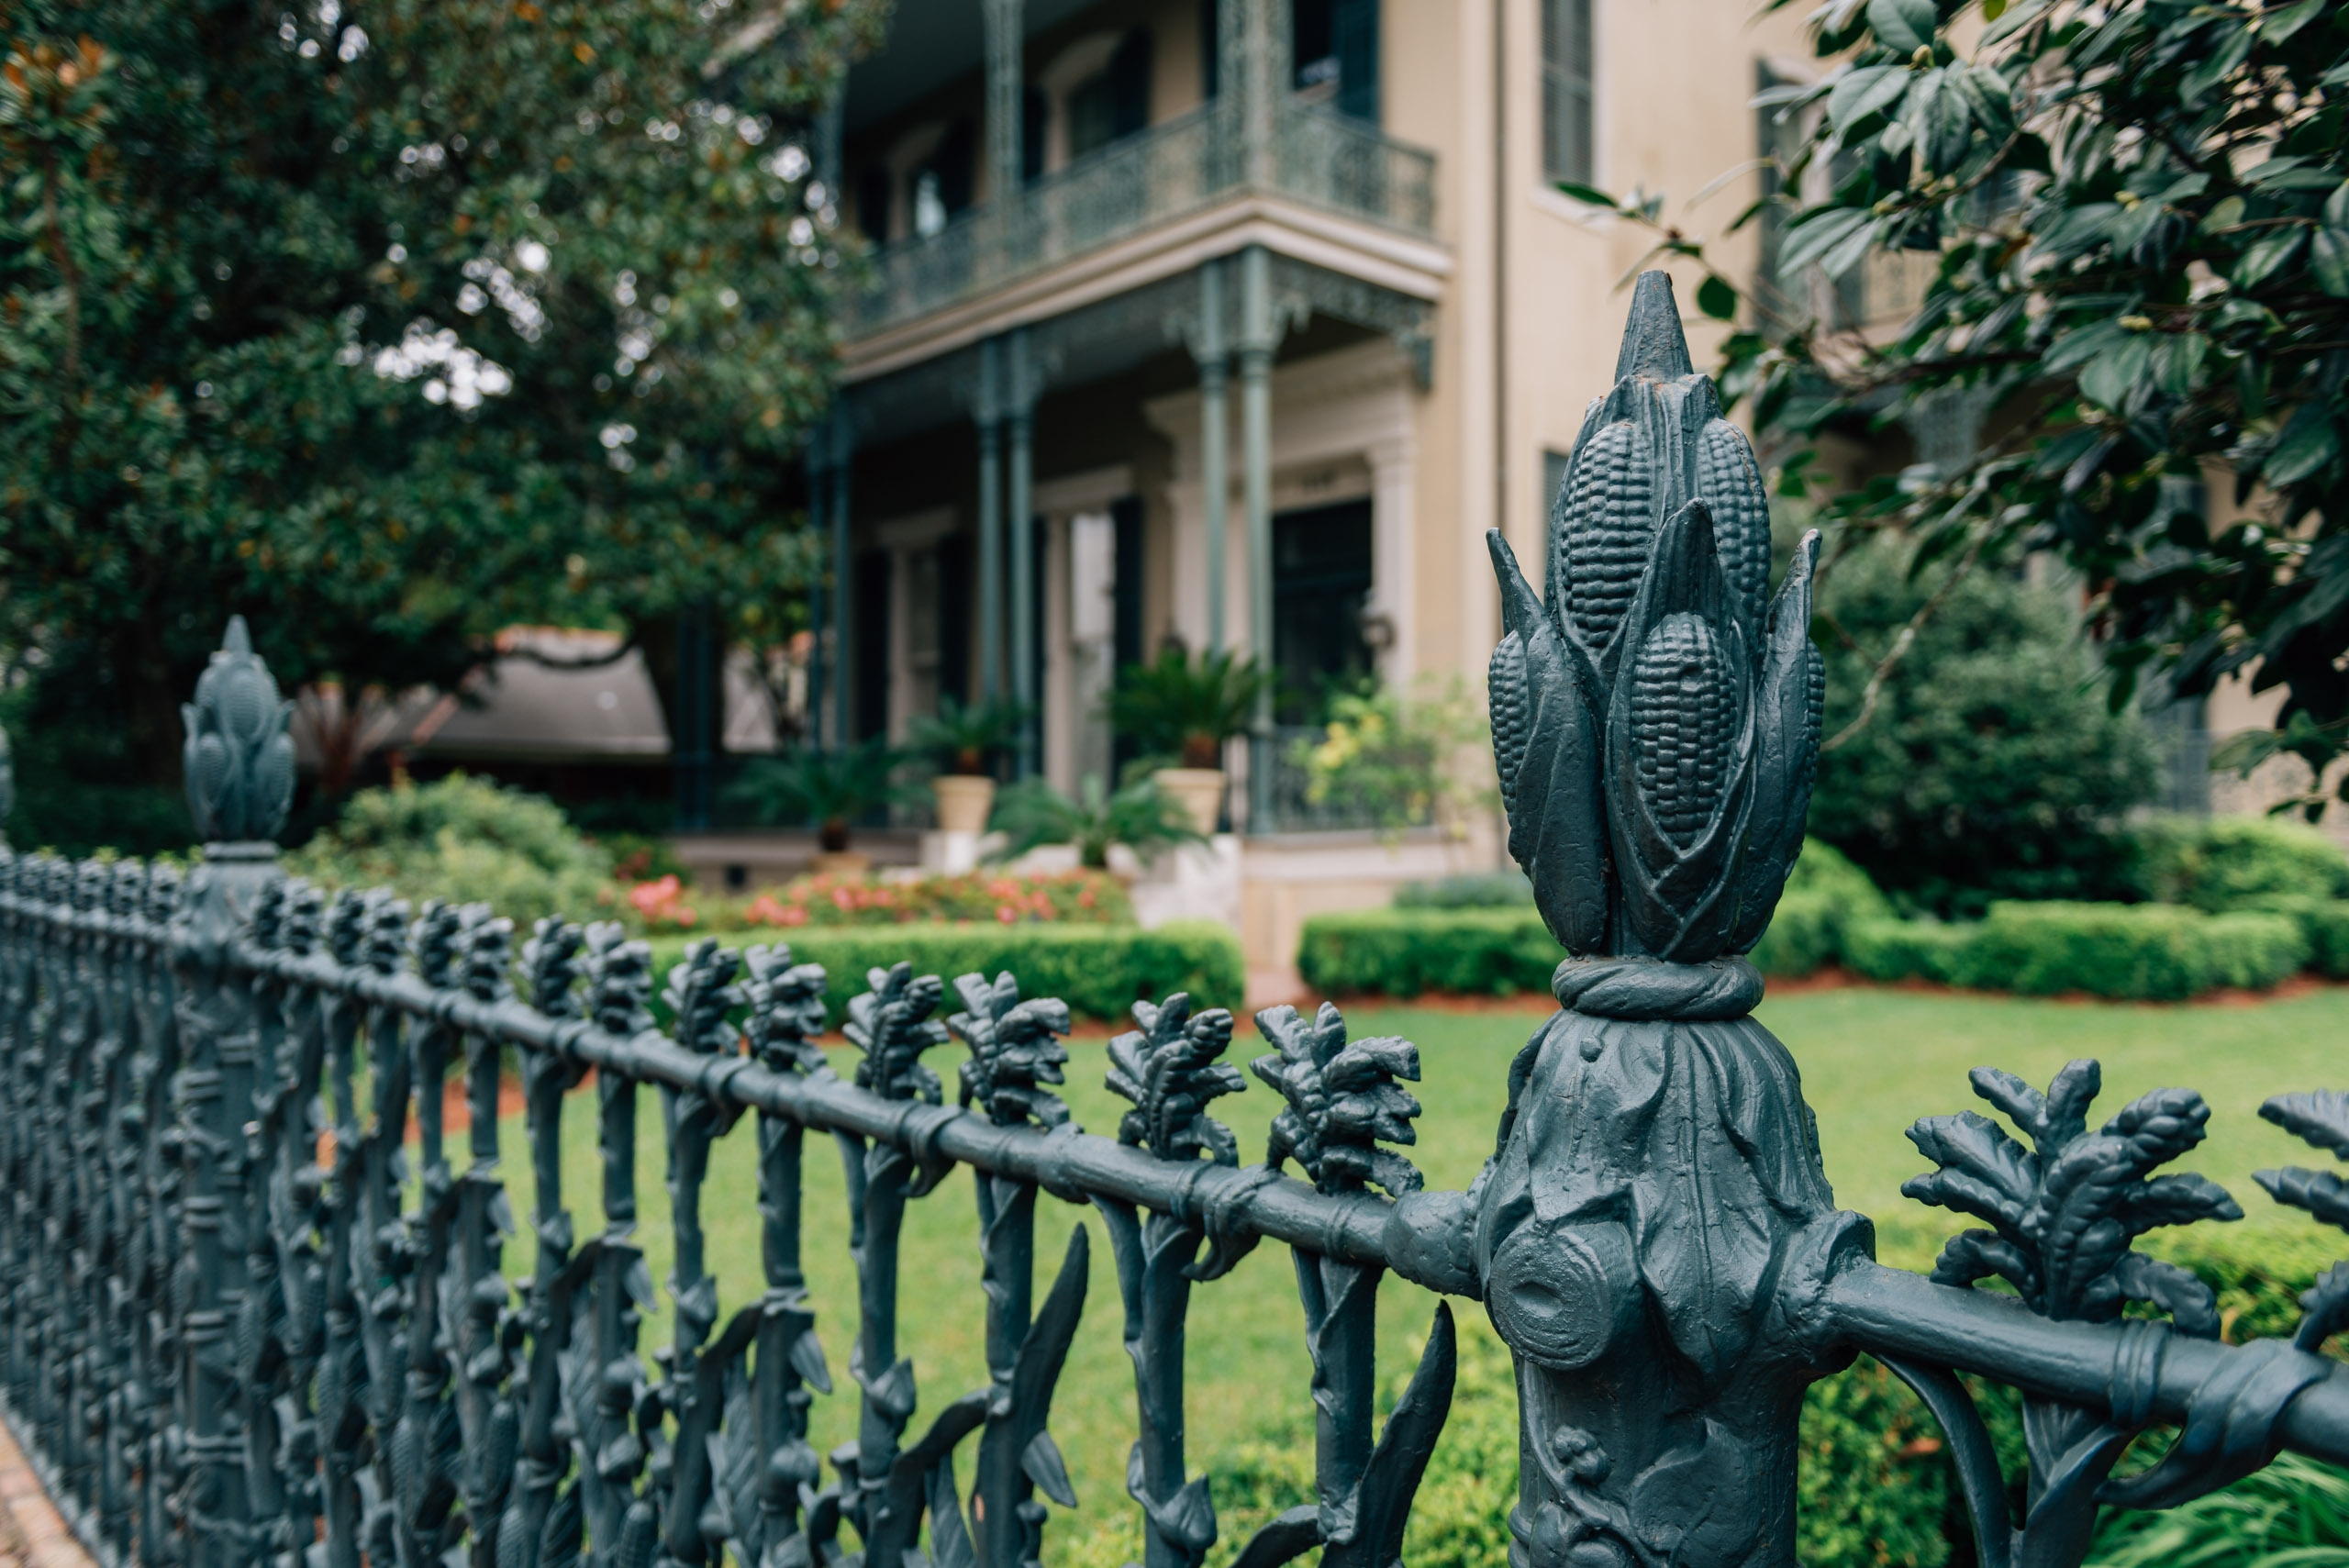 A Gothic Iron Fence